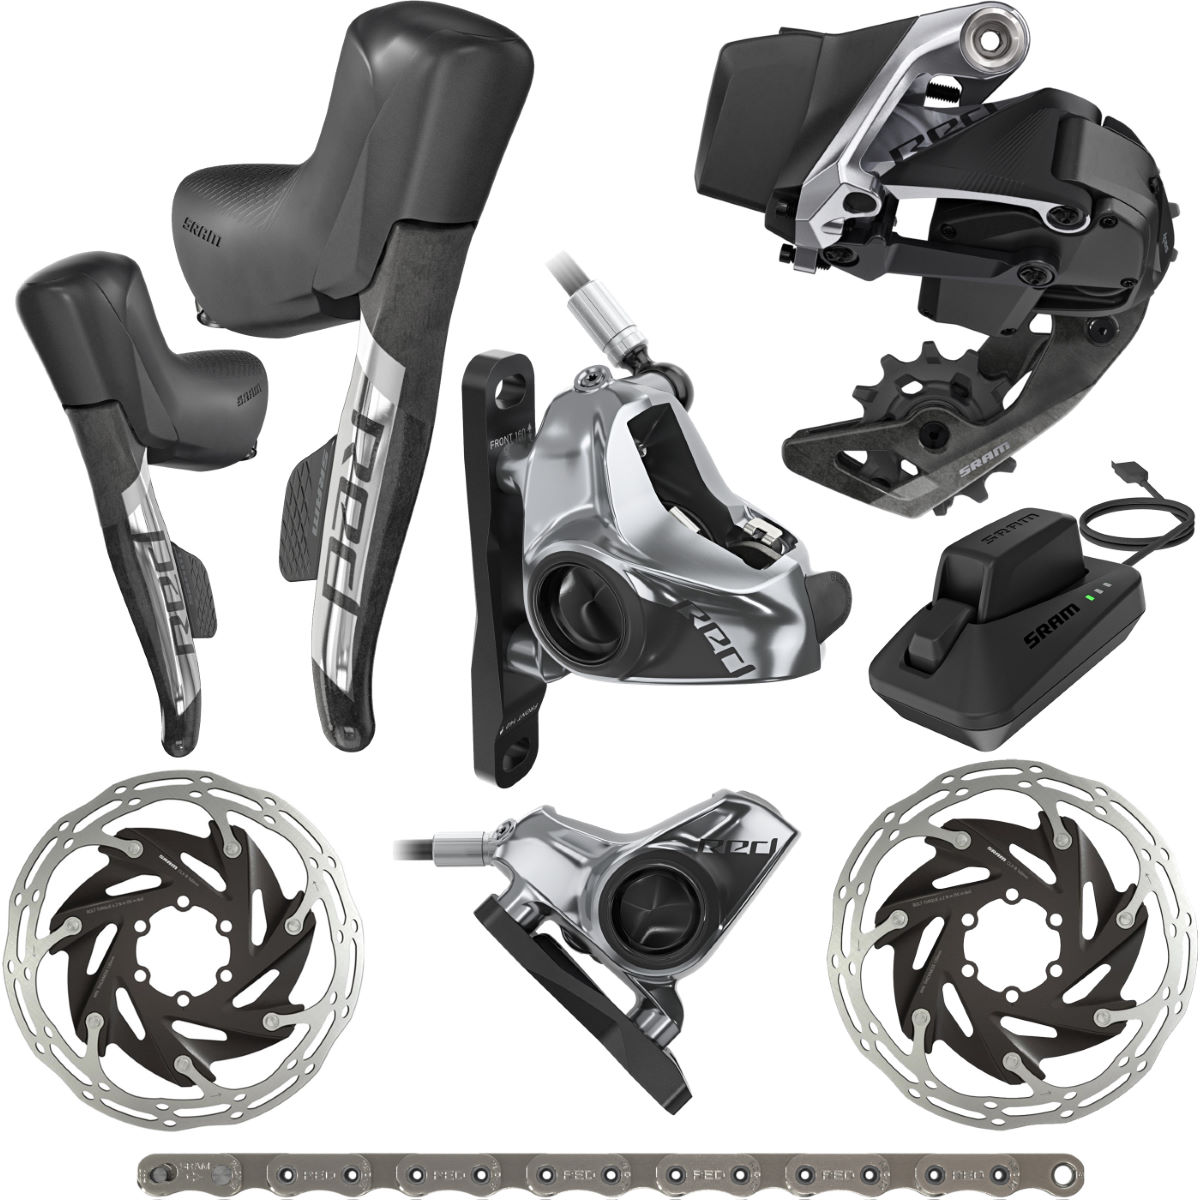 SRAM SRAM Red eTap AXS HRD FM 1x 12Sp Groupset   Groupsets